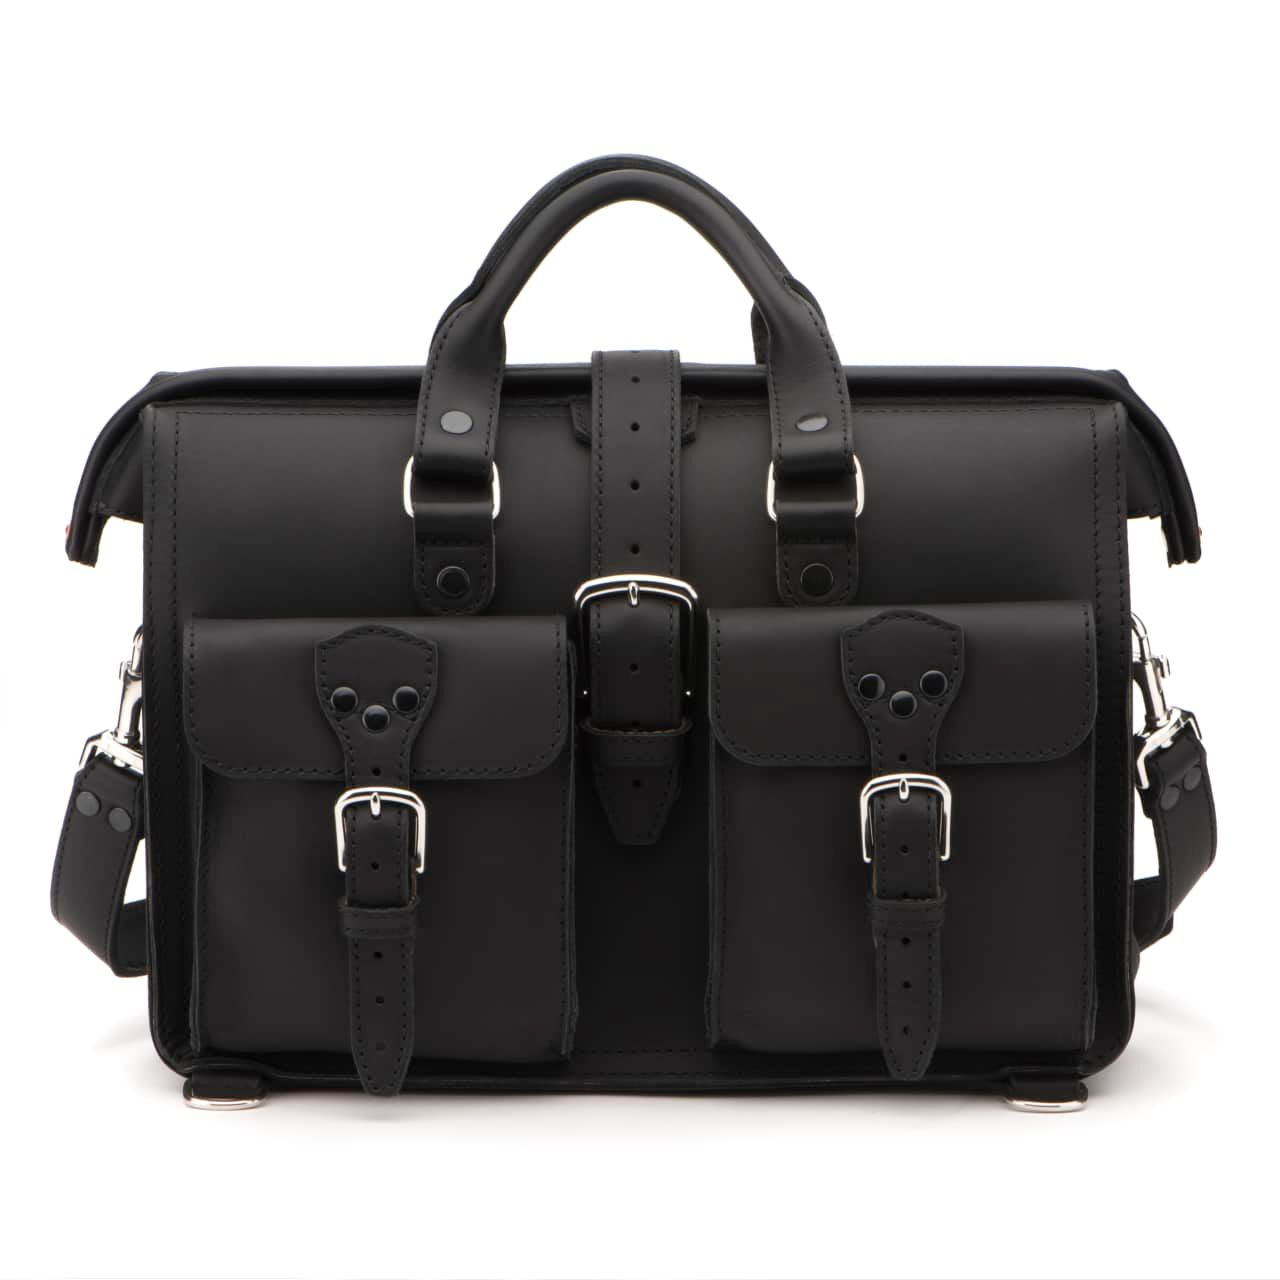 Leather Flight Bag in color Black shown from the Front